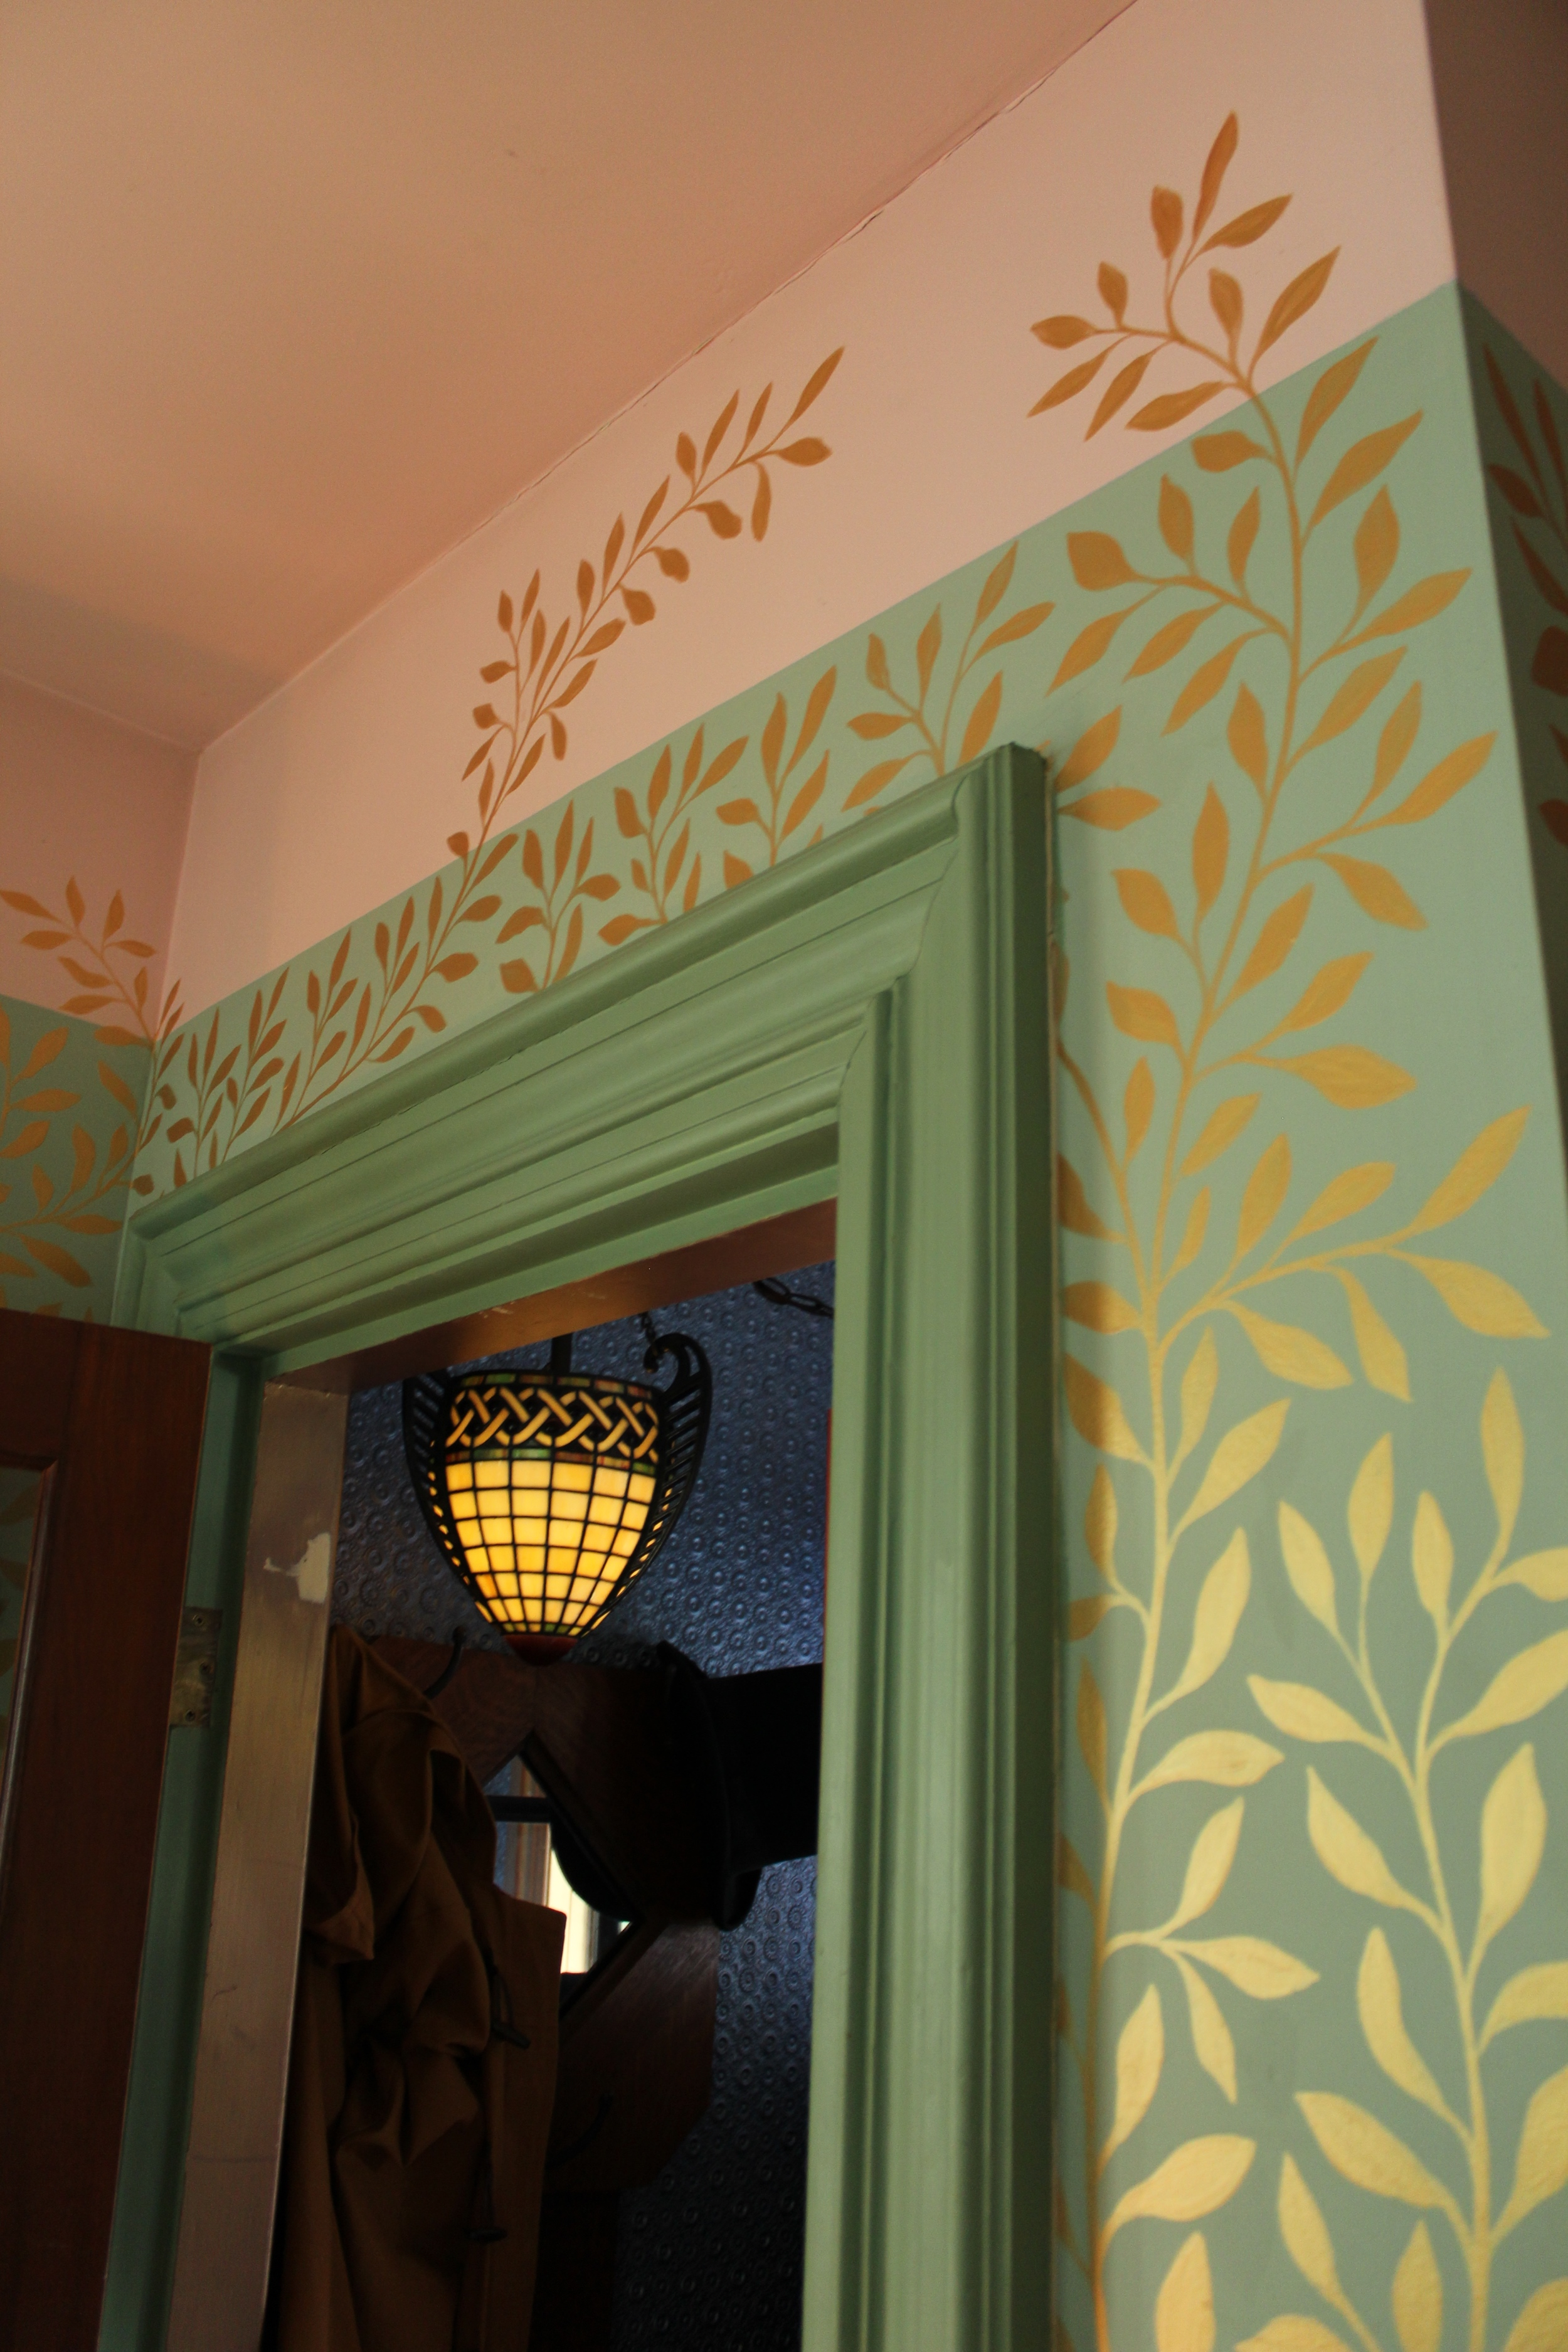 Hand-painted wall murals Photo by Jessica Jennings